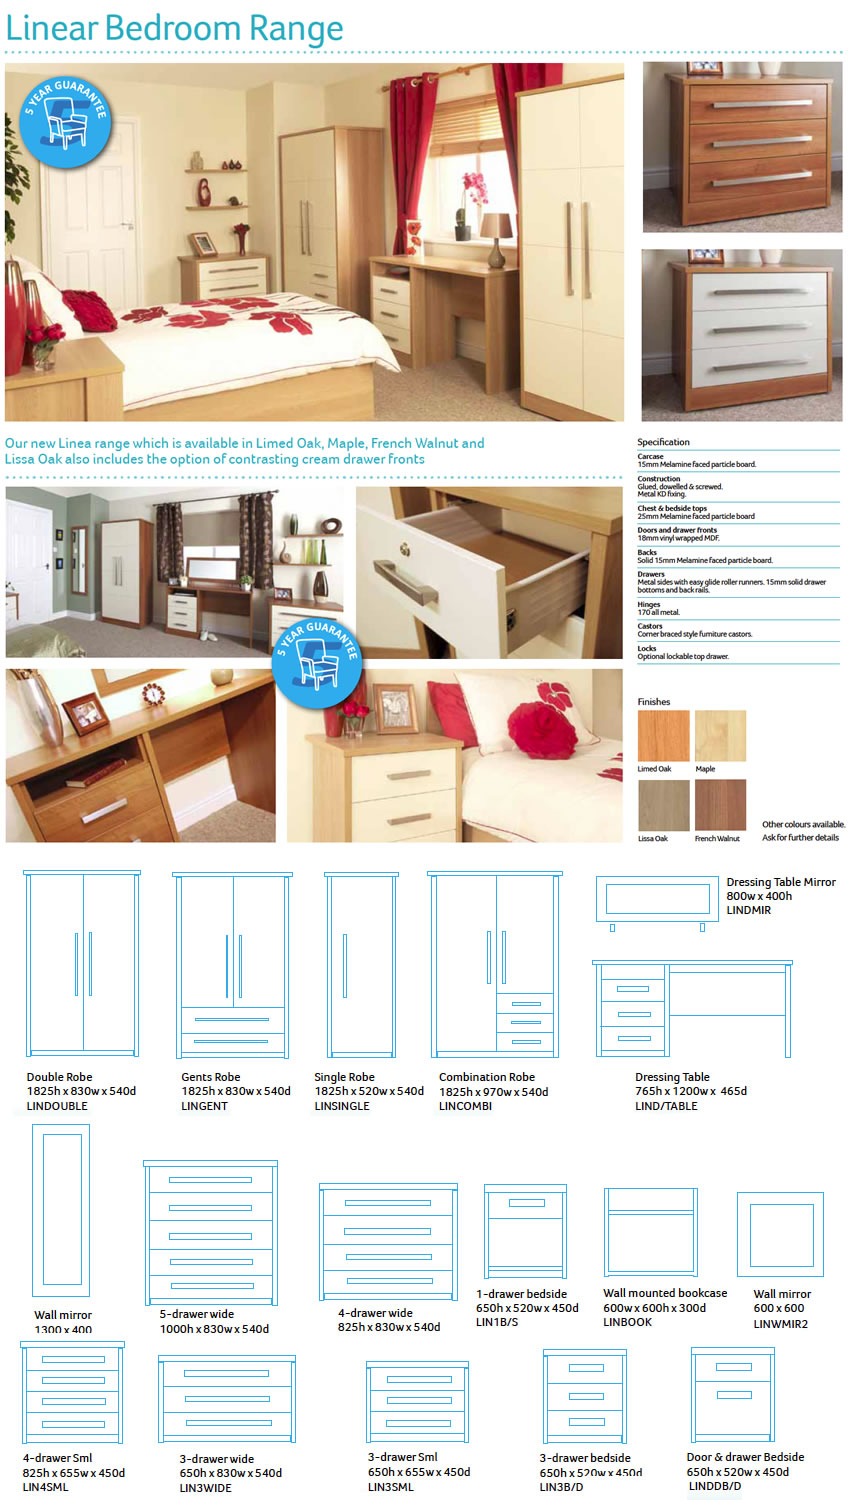 Bedroom Packages - Linea Range